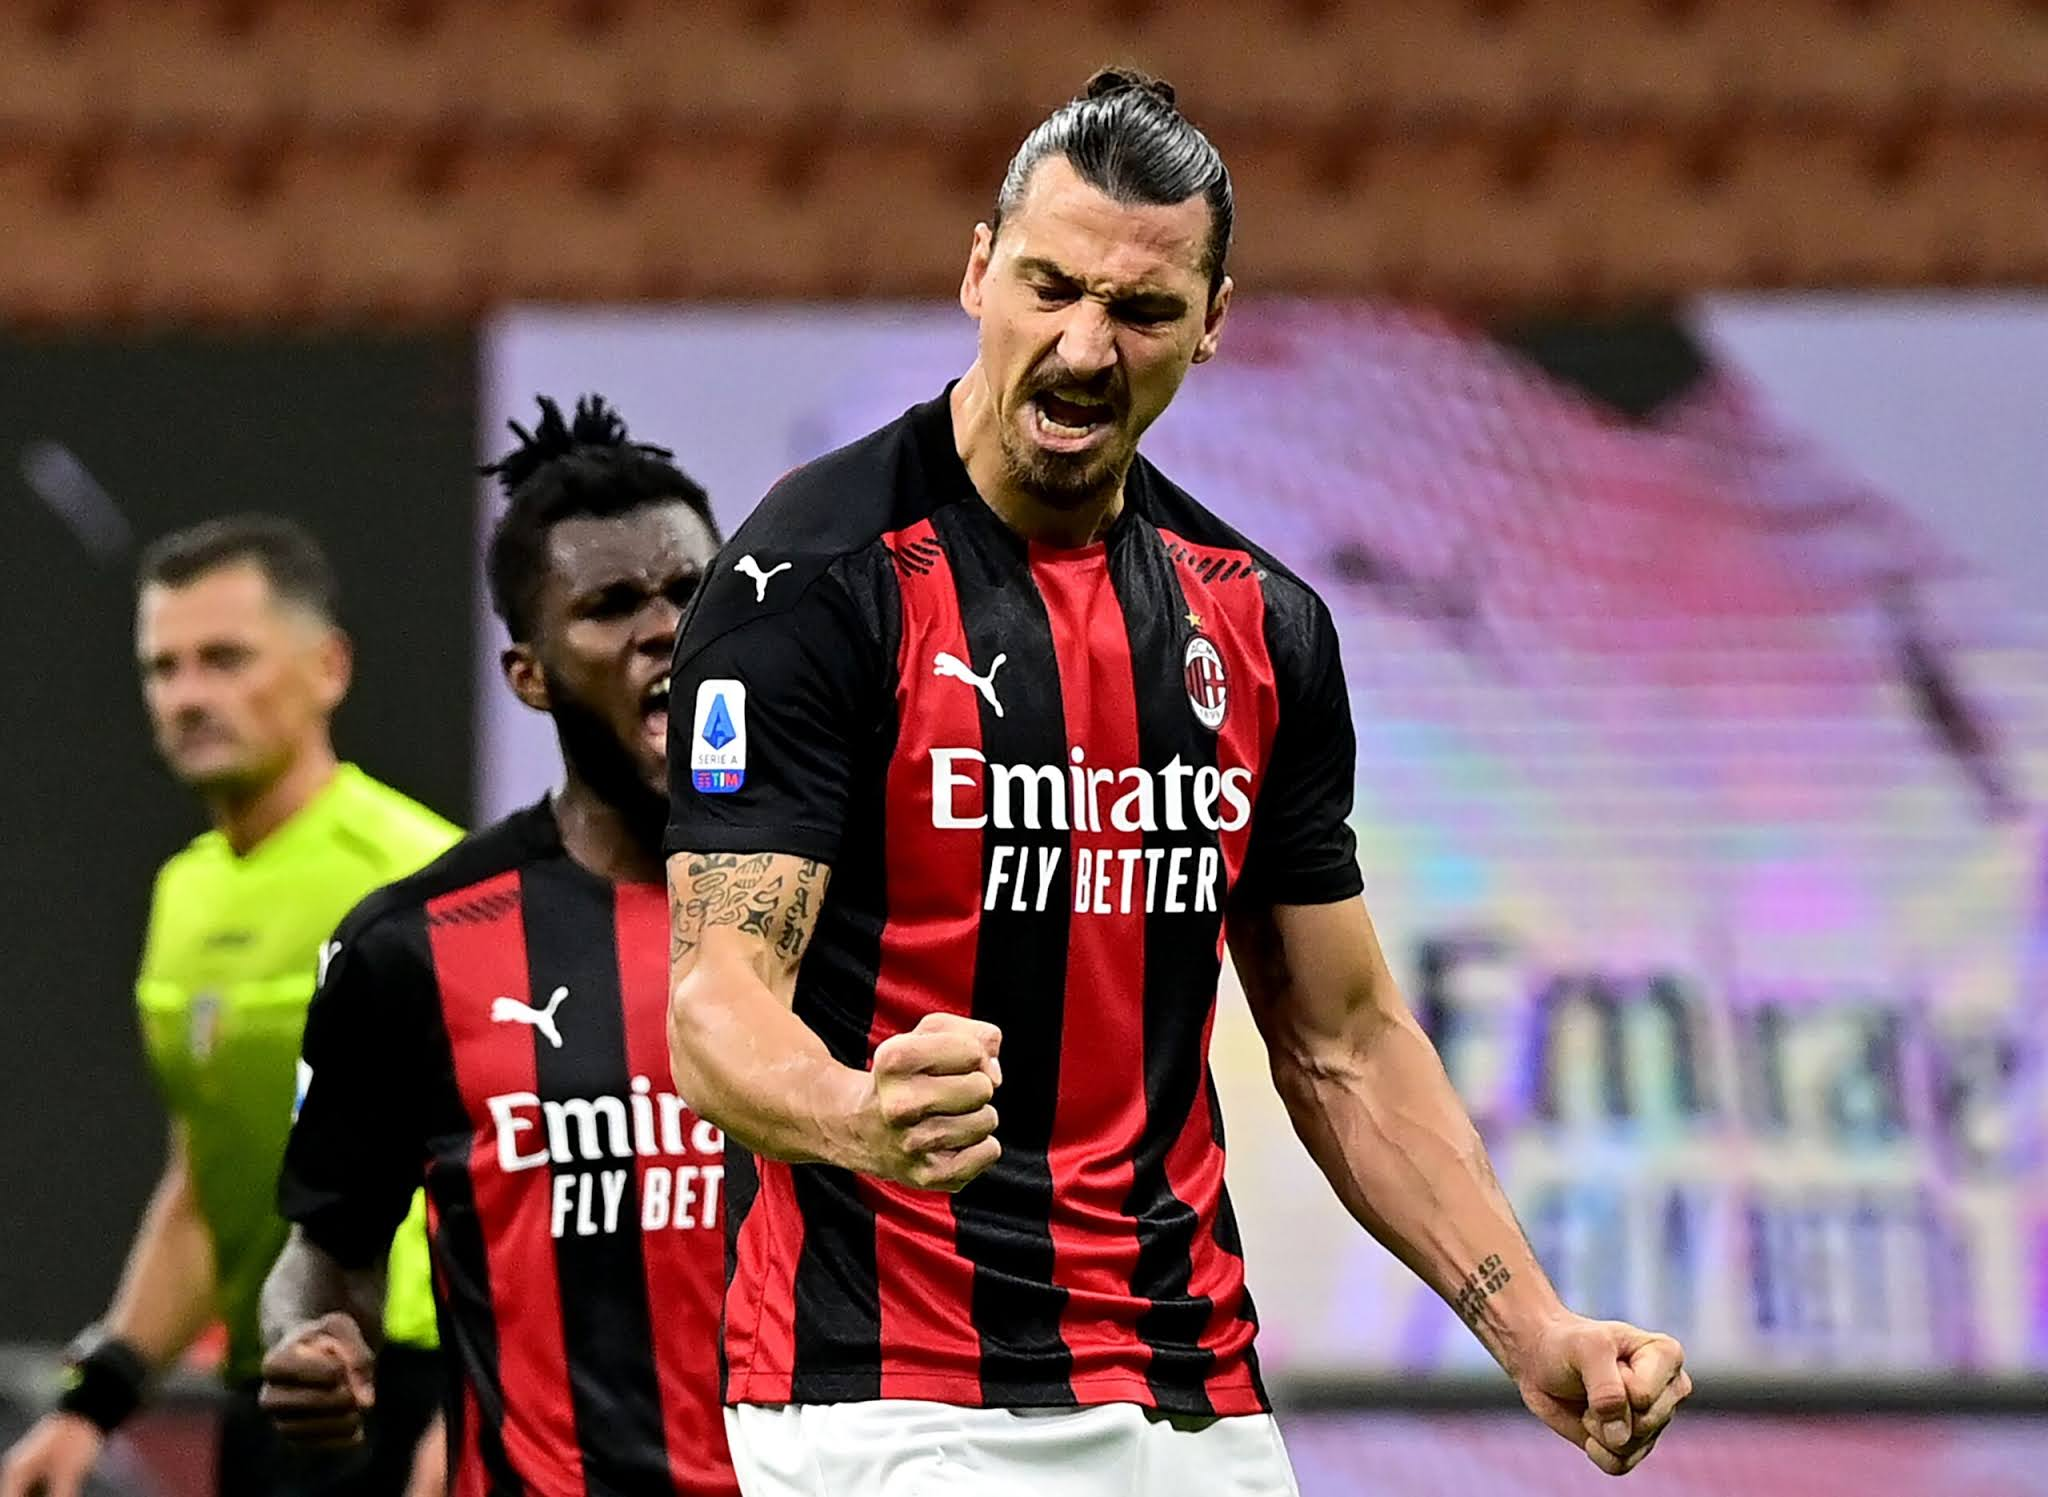 AC Milan's Zlatan Ibrahimovic is in fine form for Rossoneri the